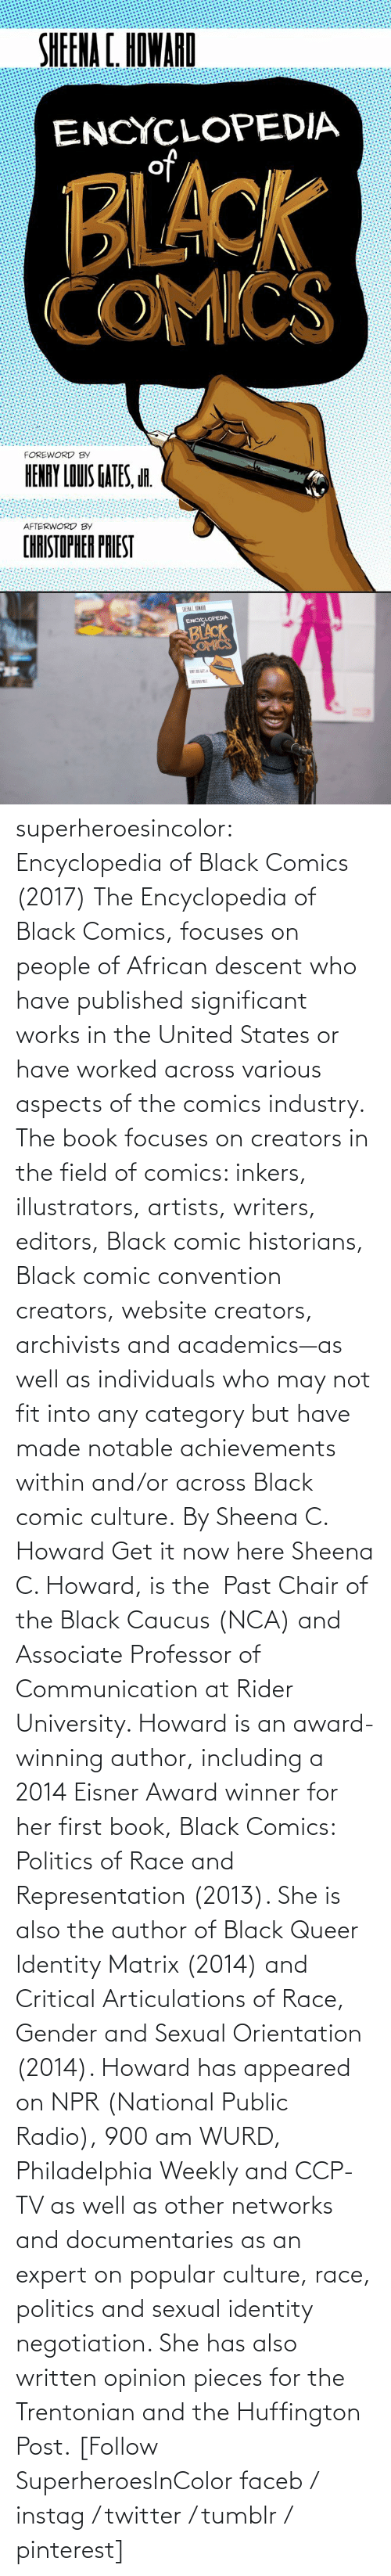 Not: superheroesincolor: Encyclopedia of Black Comics (2017) The Encyclopedia of Black Comics, focuses on people of African descent who have published significant works in the United States or have worked across various aspects of the comics industry.  The book focuses on creators in the field of comics: inkers, illustrators, artists, writers, editors, Black comic historians, Black comic convention creators, website creators, archivists and academics—as well as individuals who may not fit into any category but have made notable achievements within and/or across Black comic culture. By Sheena C. Howard Get it now here  Sheena C. Howard, is the  Past Chair of the Black Caucus (NCA) and Associate Professor of Communication at Rider University. Howard is an award-winning author, including a 2014 Eisner Award winner for her first book, Black Comics: Politics of Race and Representation (2013). She is also the author of Black Queer Identity Matrix (2014) and Critical Articulations of Race, Gender and Sexual Orientation (2014). Howard has appeared on NPR (National Public Radio), 900 am WURD, Philadelphia Weekly and CCP-TV as well as other networks and documentaries as an expert on popular culture, race, politics and sexual identity negotiation. She has also written opinion pieces for the Trentonian and the Huffington Post.   [Follow SuperheroesInColor faceb / instag / twitter / tumblr / pinterest]